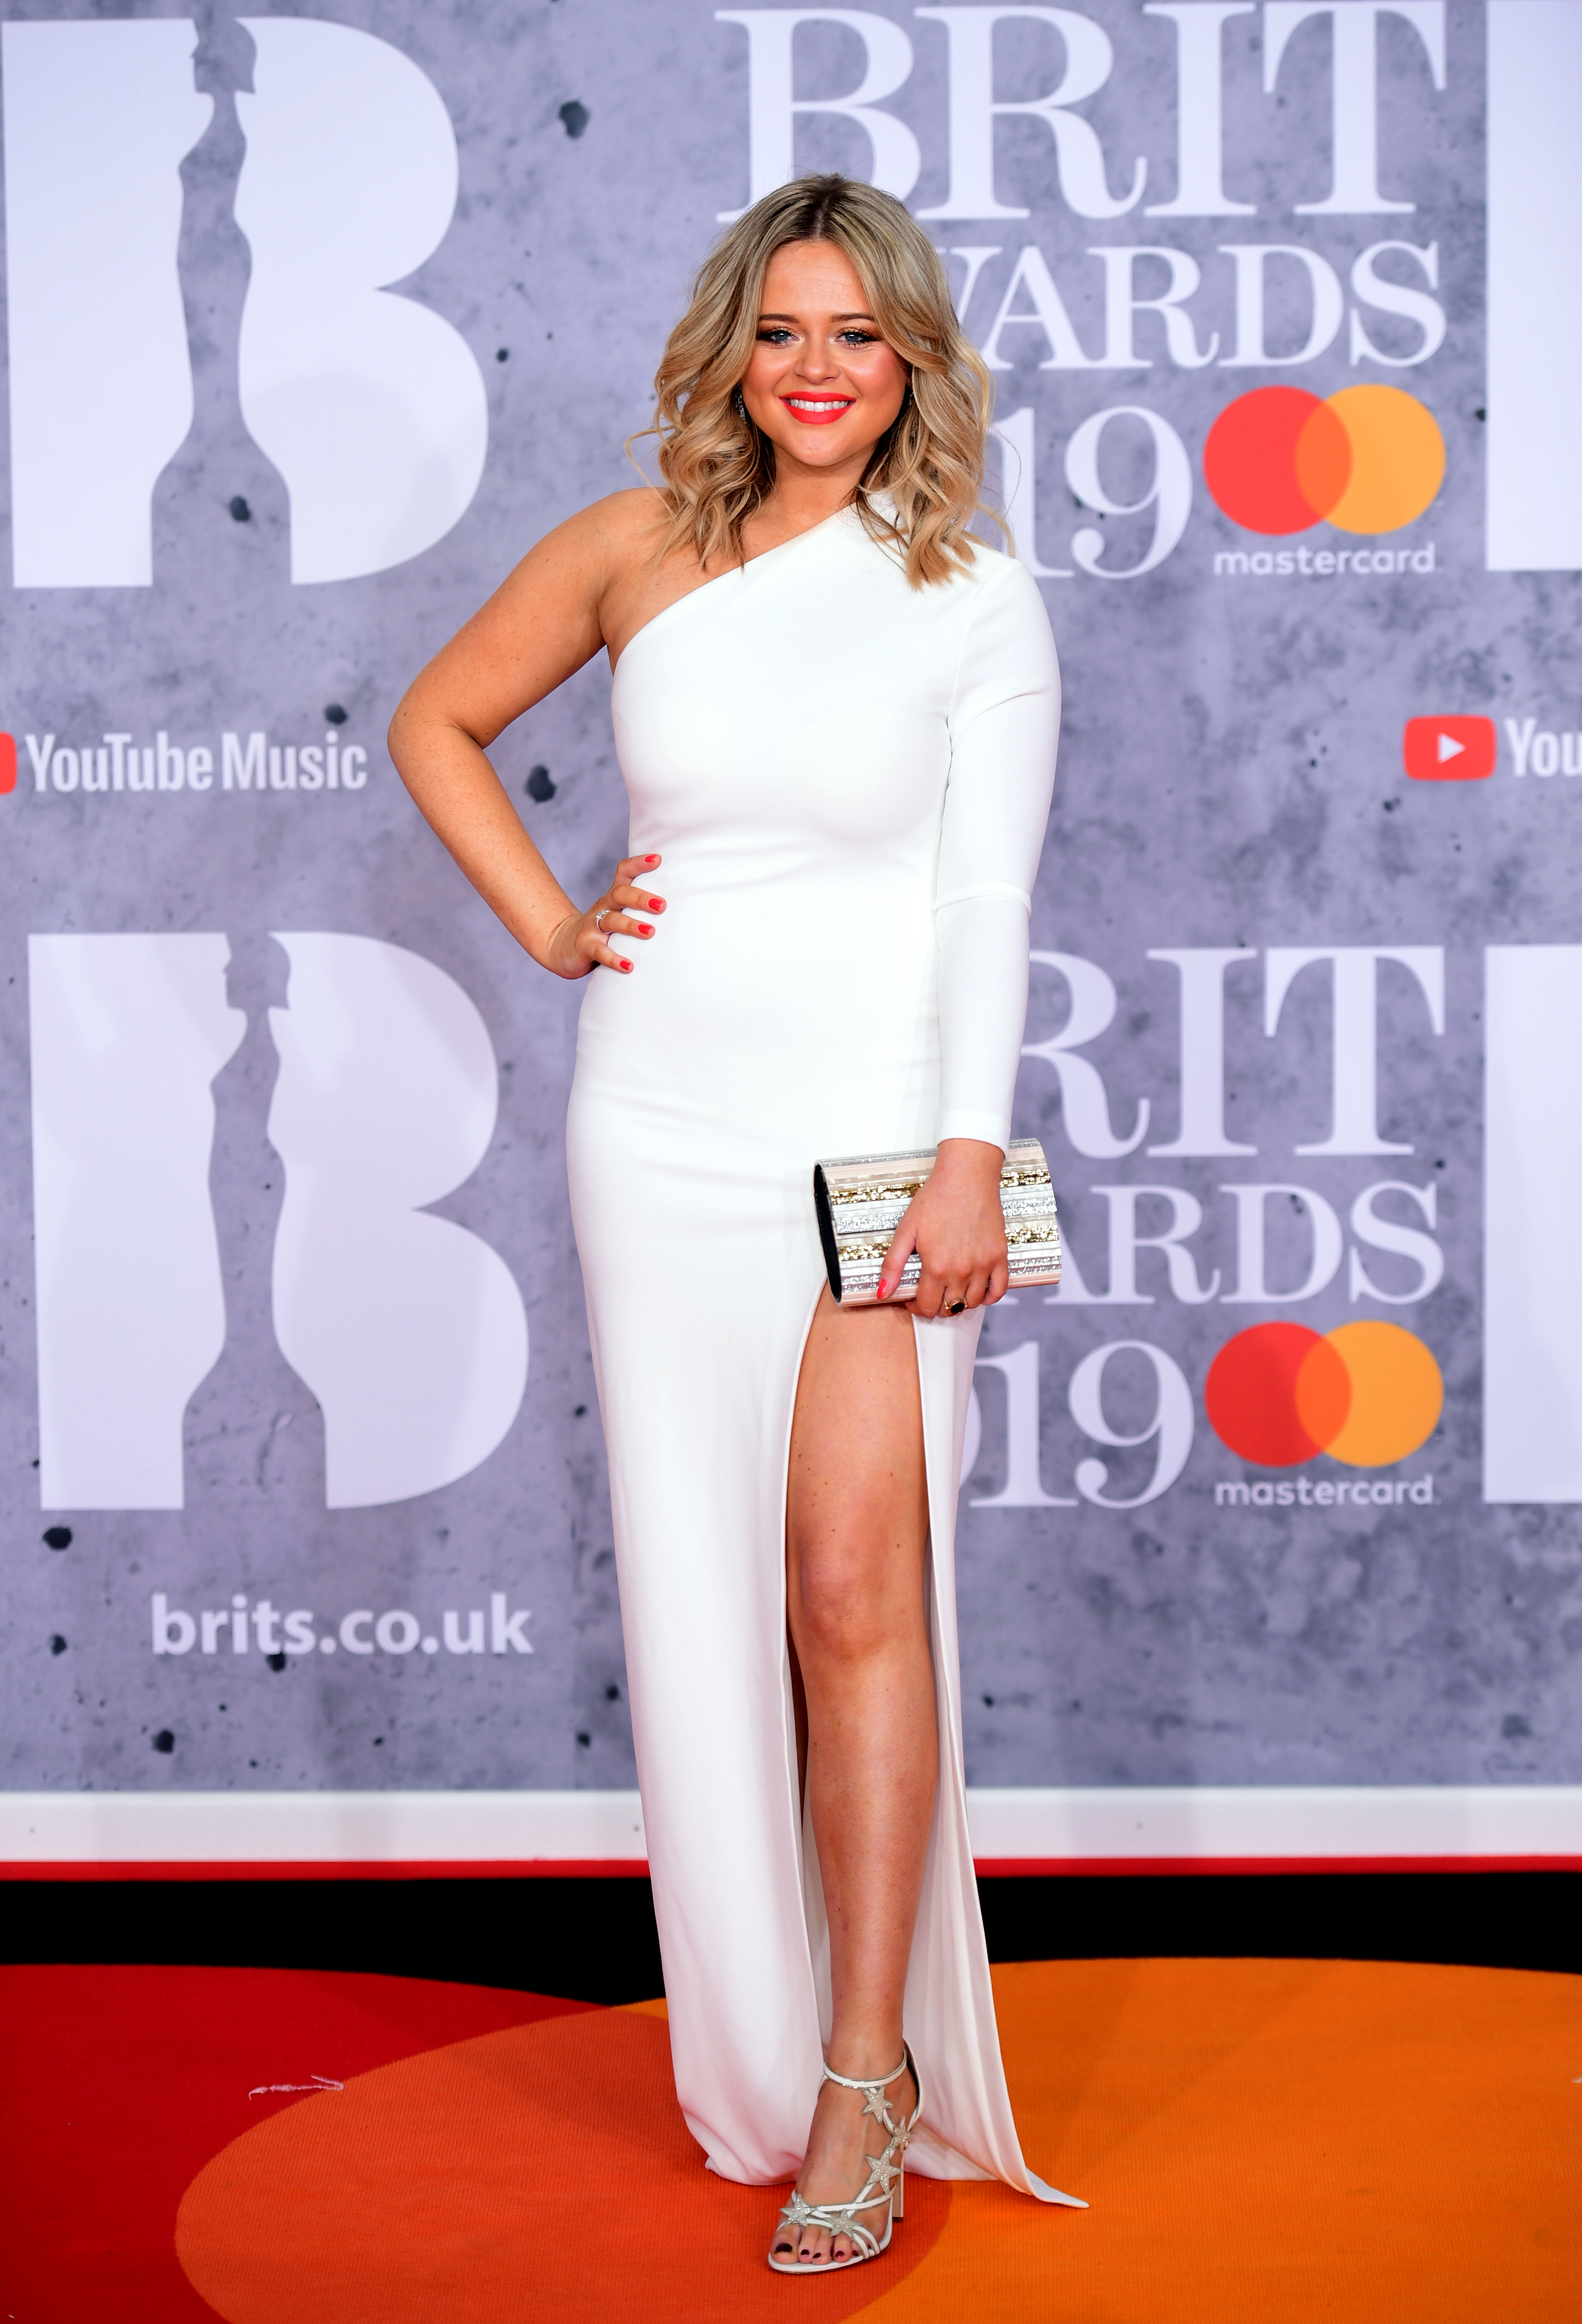 Emily Atack Hits Back At Vile Trolls Who Call Her Fat During BRITs Appearance